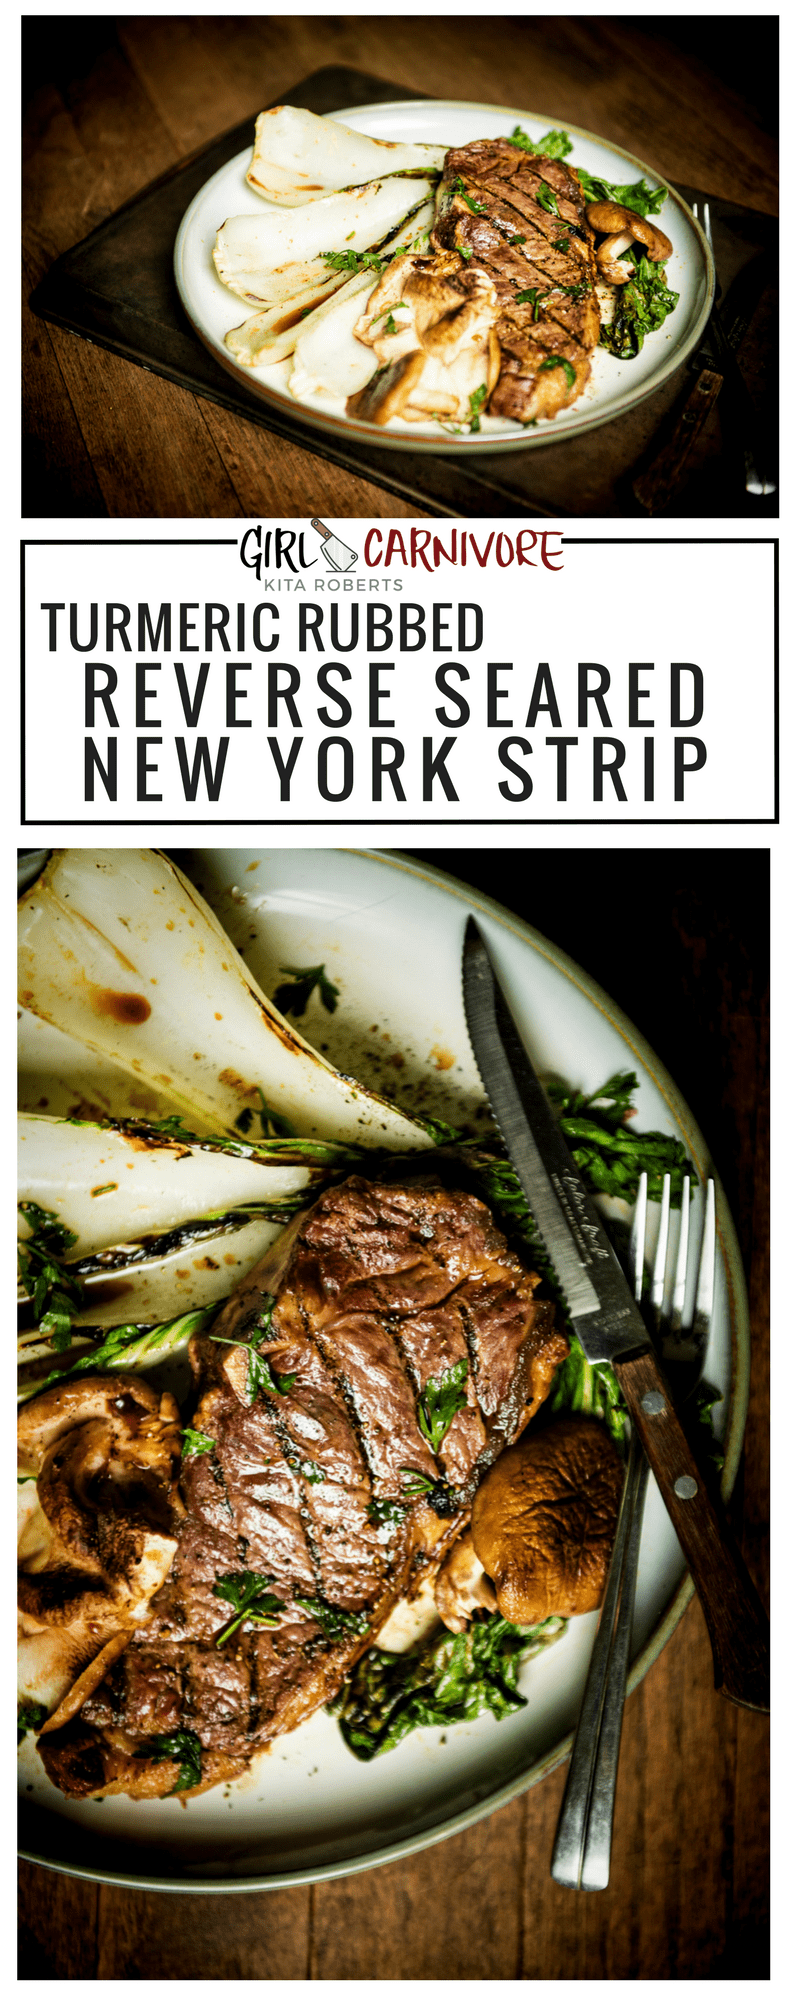 TURMERIC RUBBER REVERSE SEARED NEW YORK STRIP WITH BOK CHOY | Recipe GirlCarnivore.com